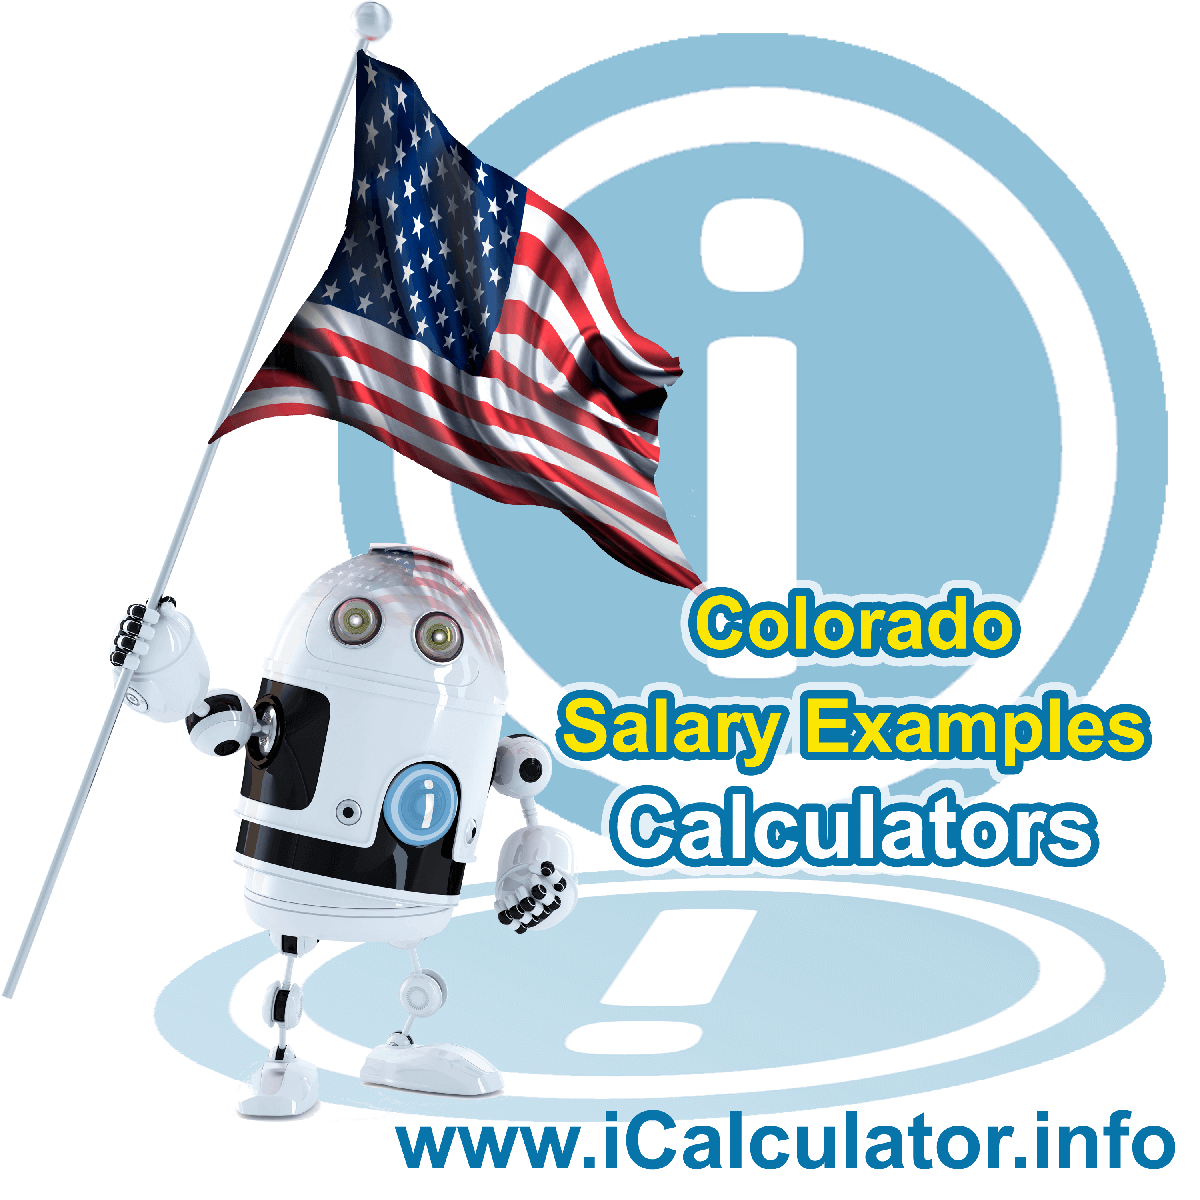 Colorado Salary Example for $37,388.00 in 2021 | iCalculator™ | $37,388.00 salary example for employee and employer paying Colorado State tincome taxes. Detailed salary after tax calculation including Colorado State Tax, Federal State Tax, Medicare Deductions, Social Security, Capital Gains and other income tax and salary deductions complete with supporting Colorado state tax tables